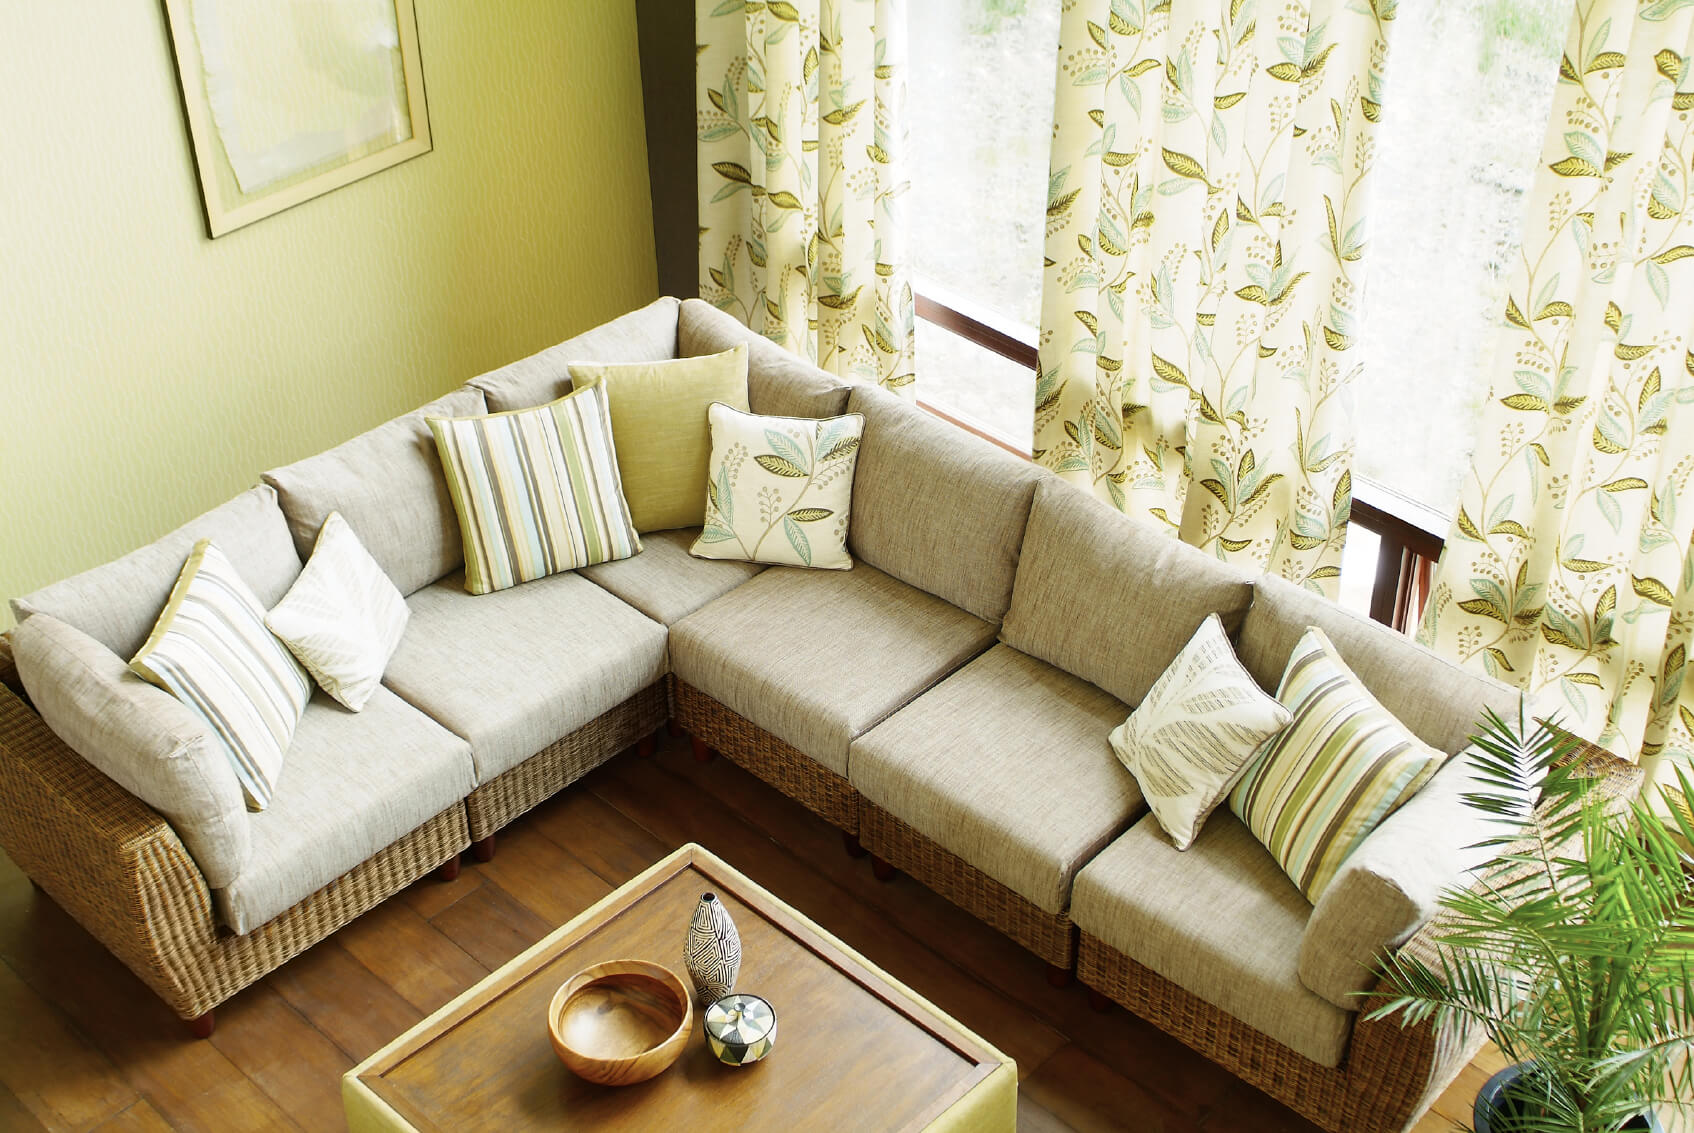 Marvelous Living Room Furniture Ideas Definitive Guide To - Sofa designs for living room